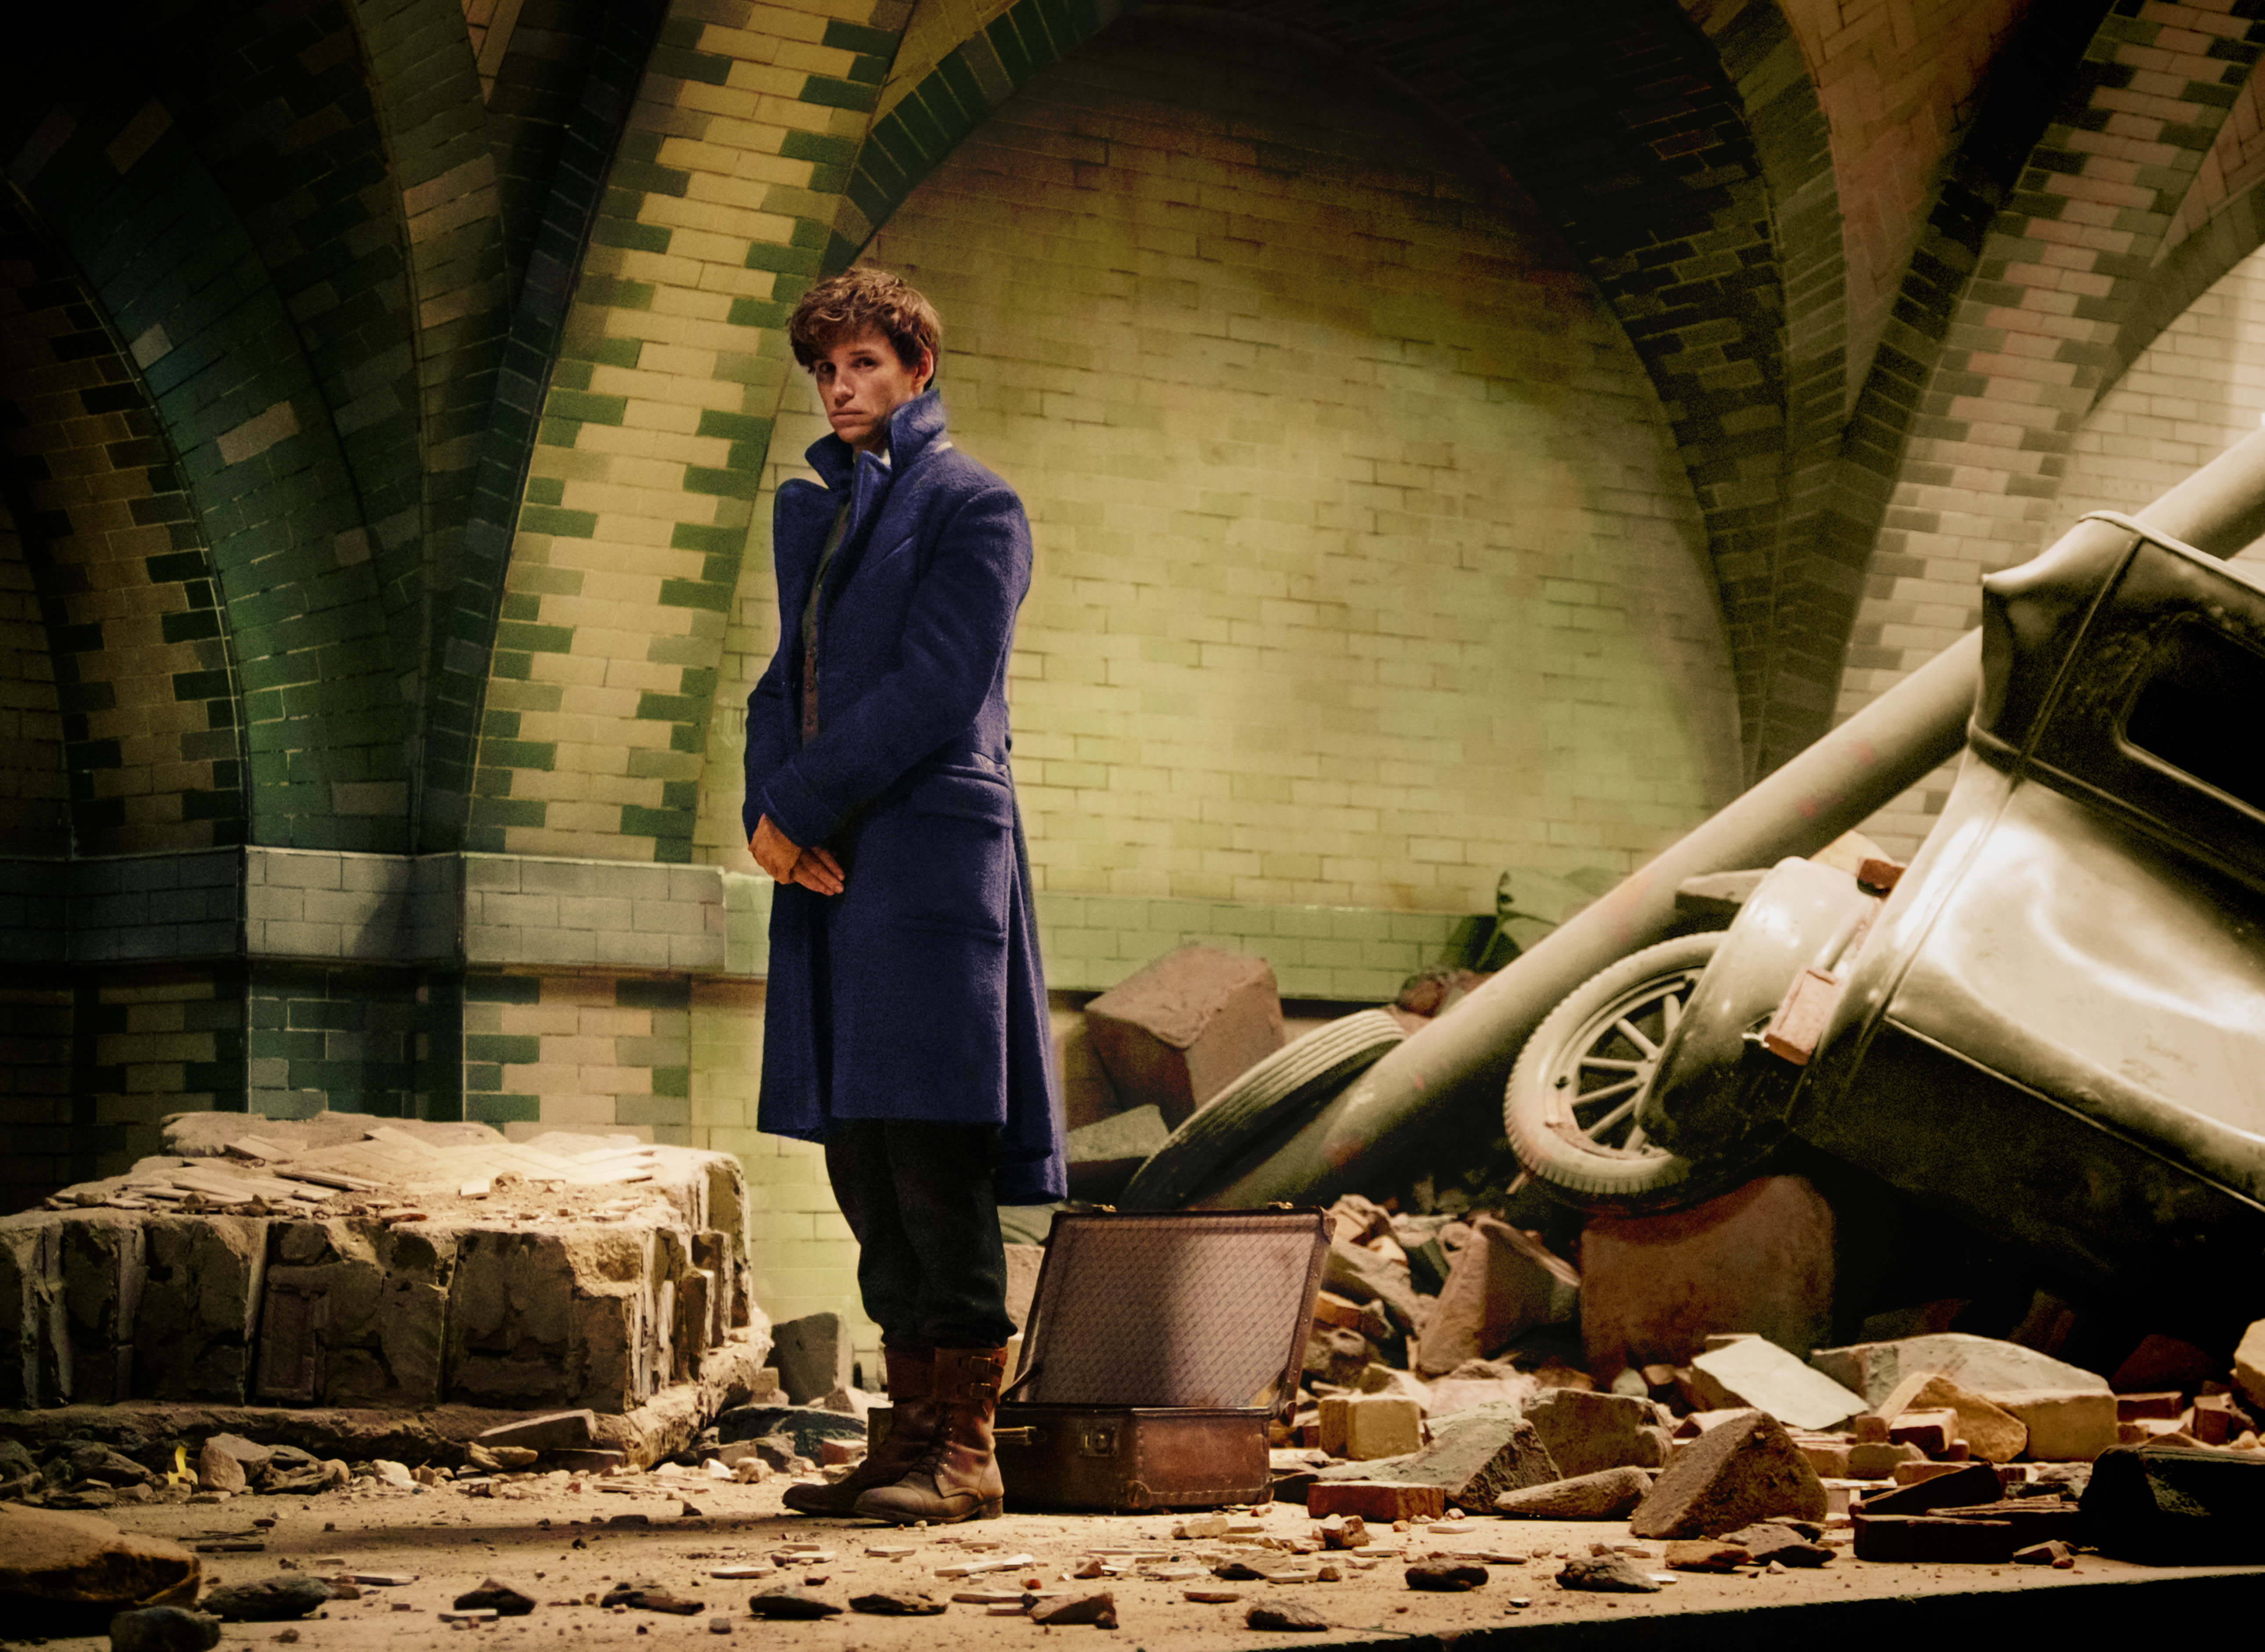 FB WB Newt Scamander at Destroyed City Hall Subway Station